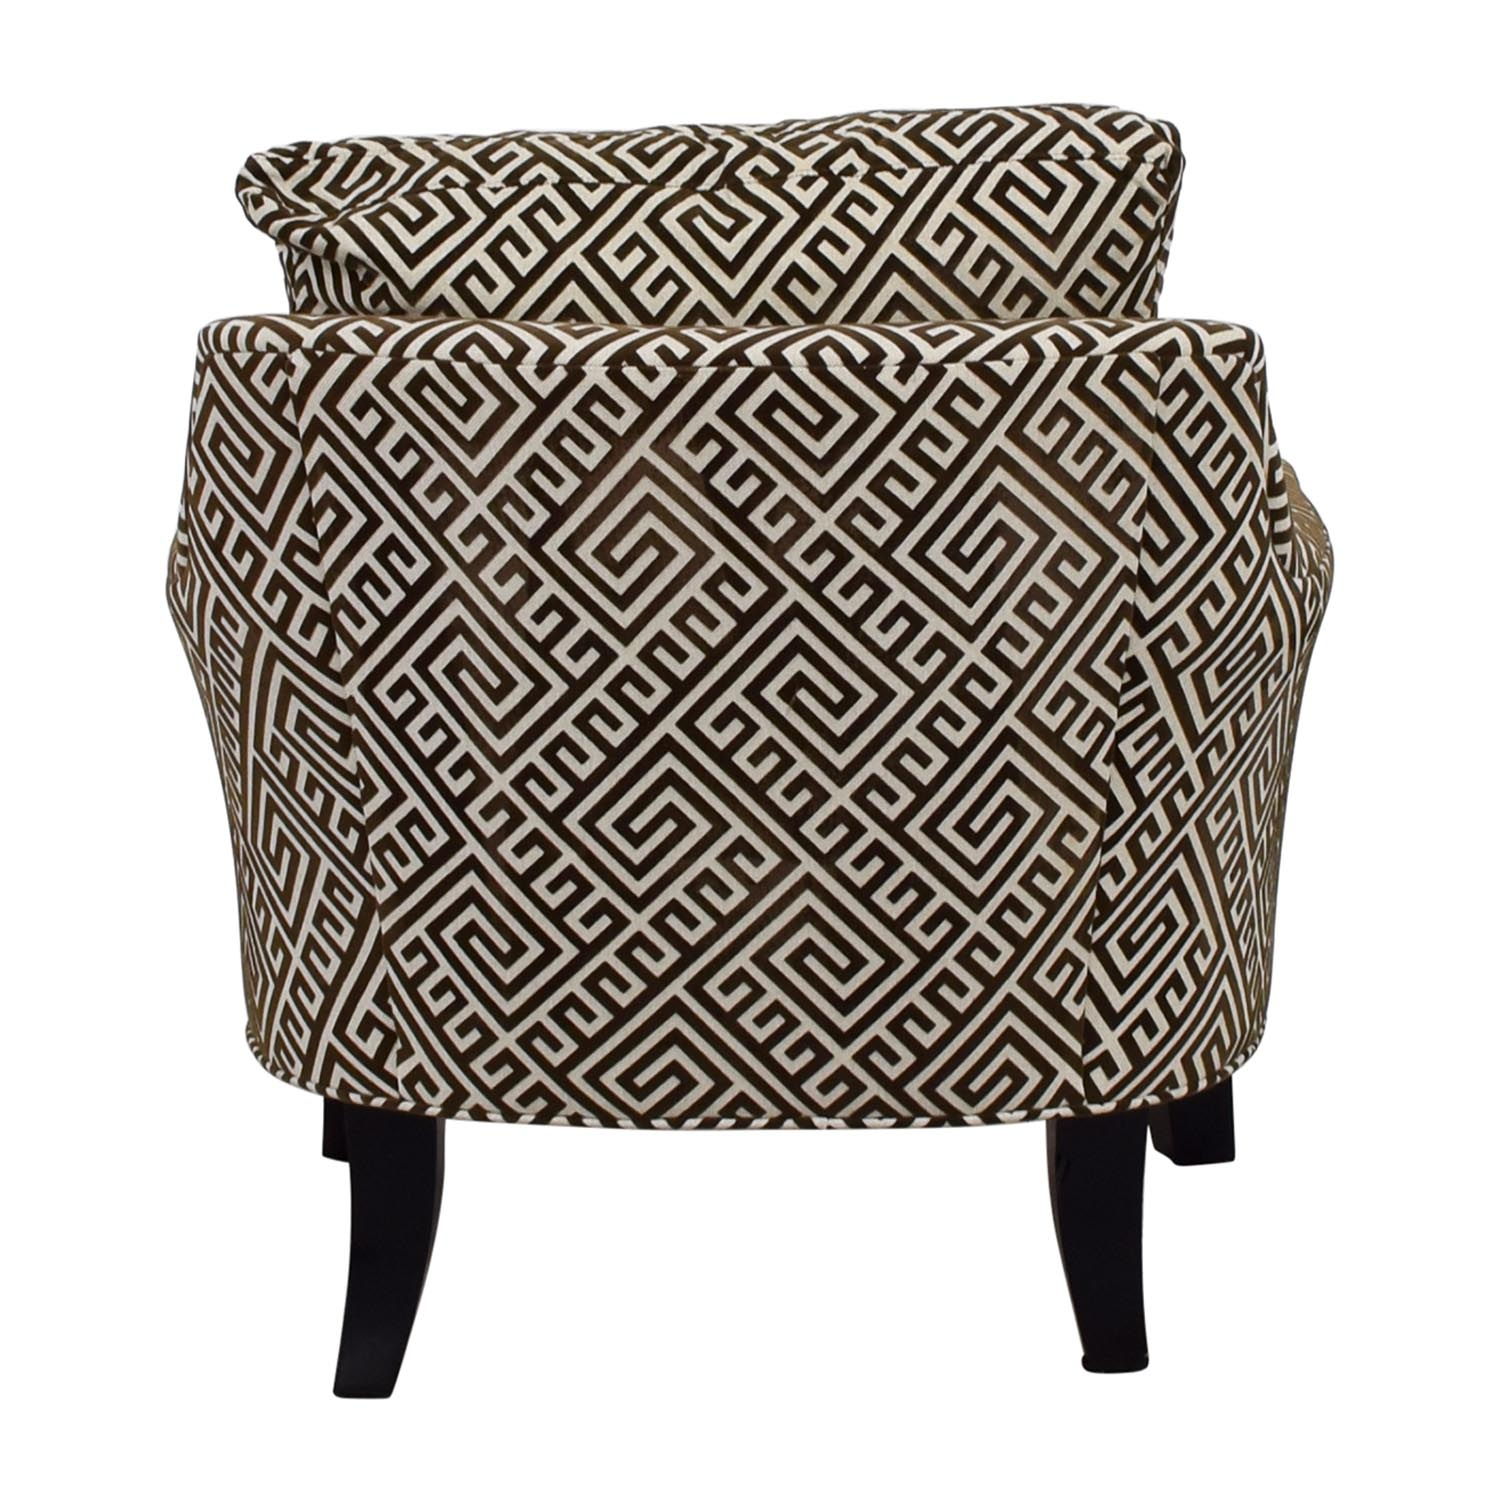 shop Raymour & Flanigan Raymour & Flanigan Brown and White Accent Arm Chair online